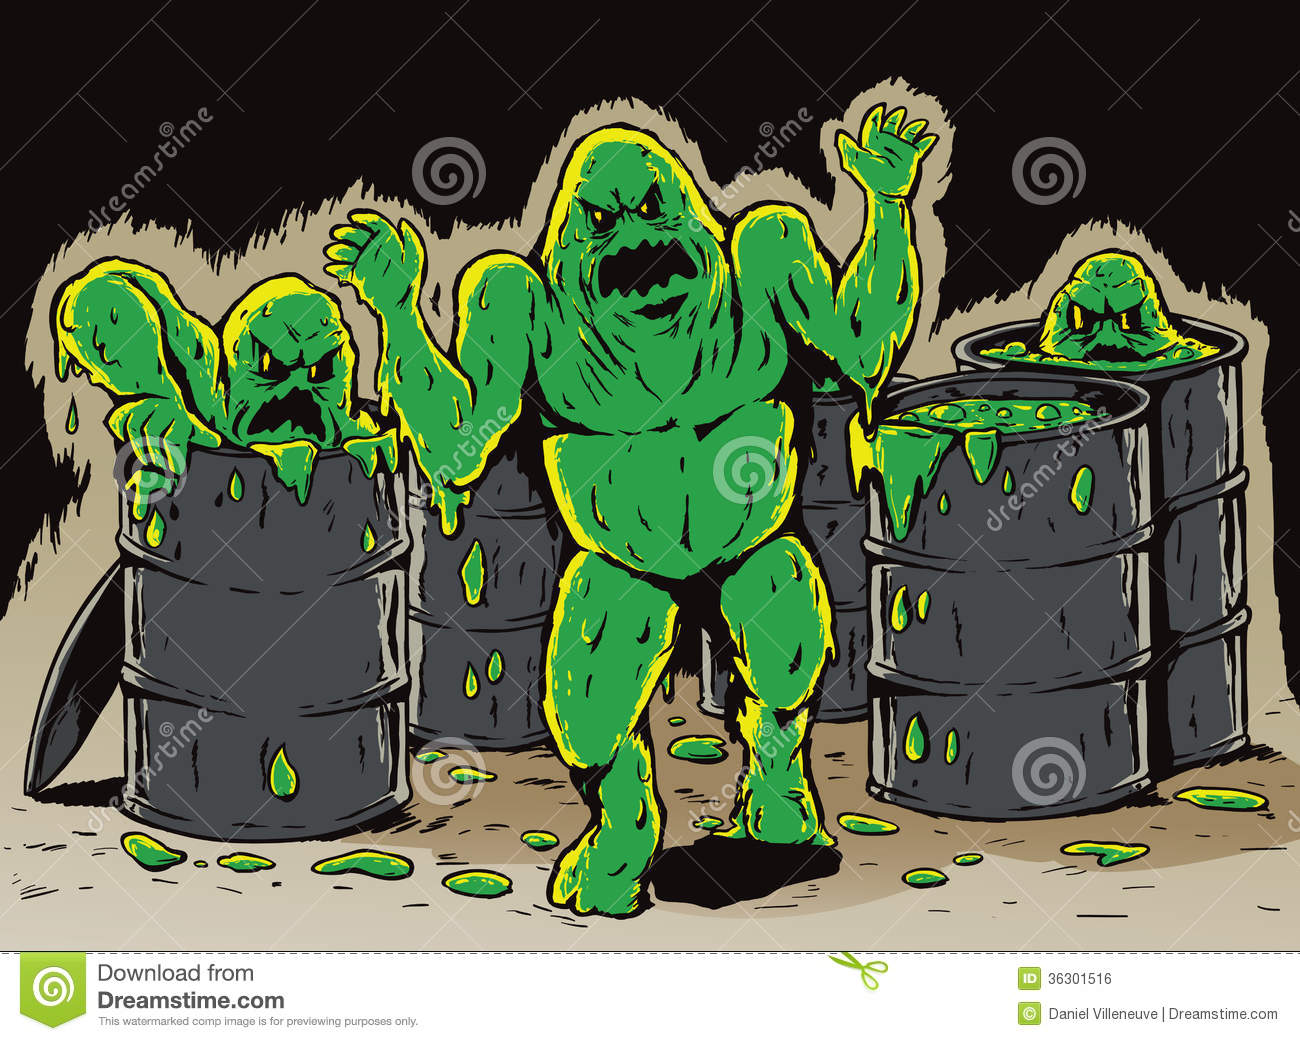 Image result for images of slime monsters